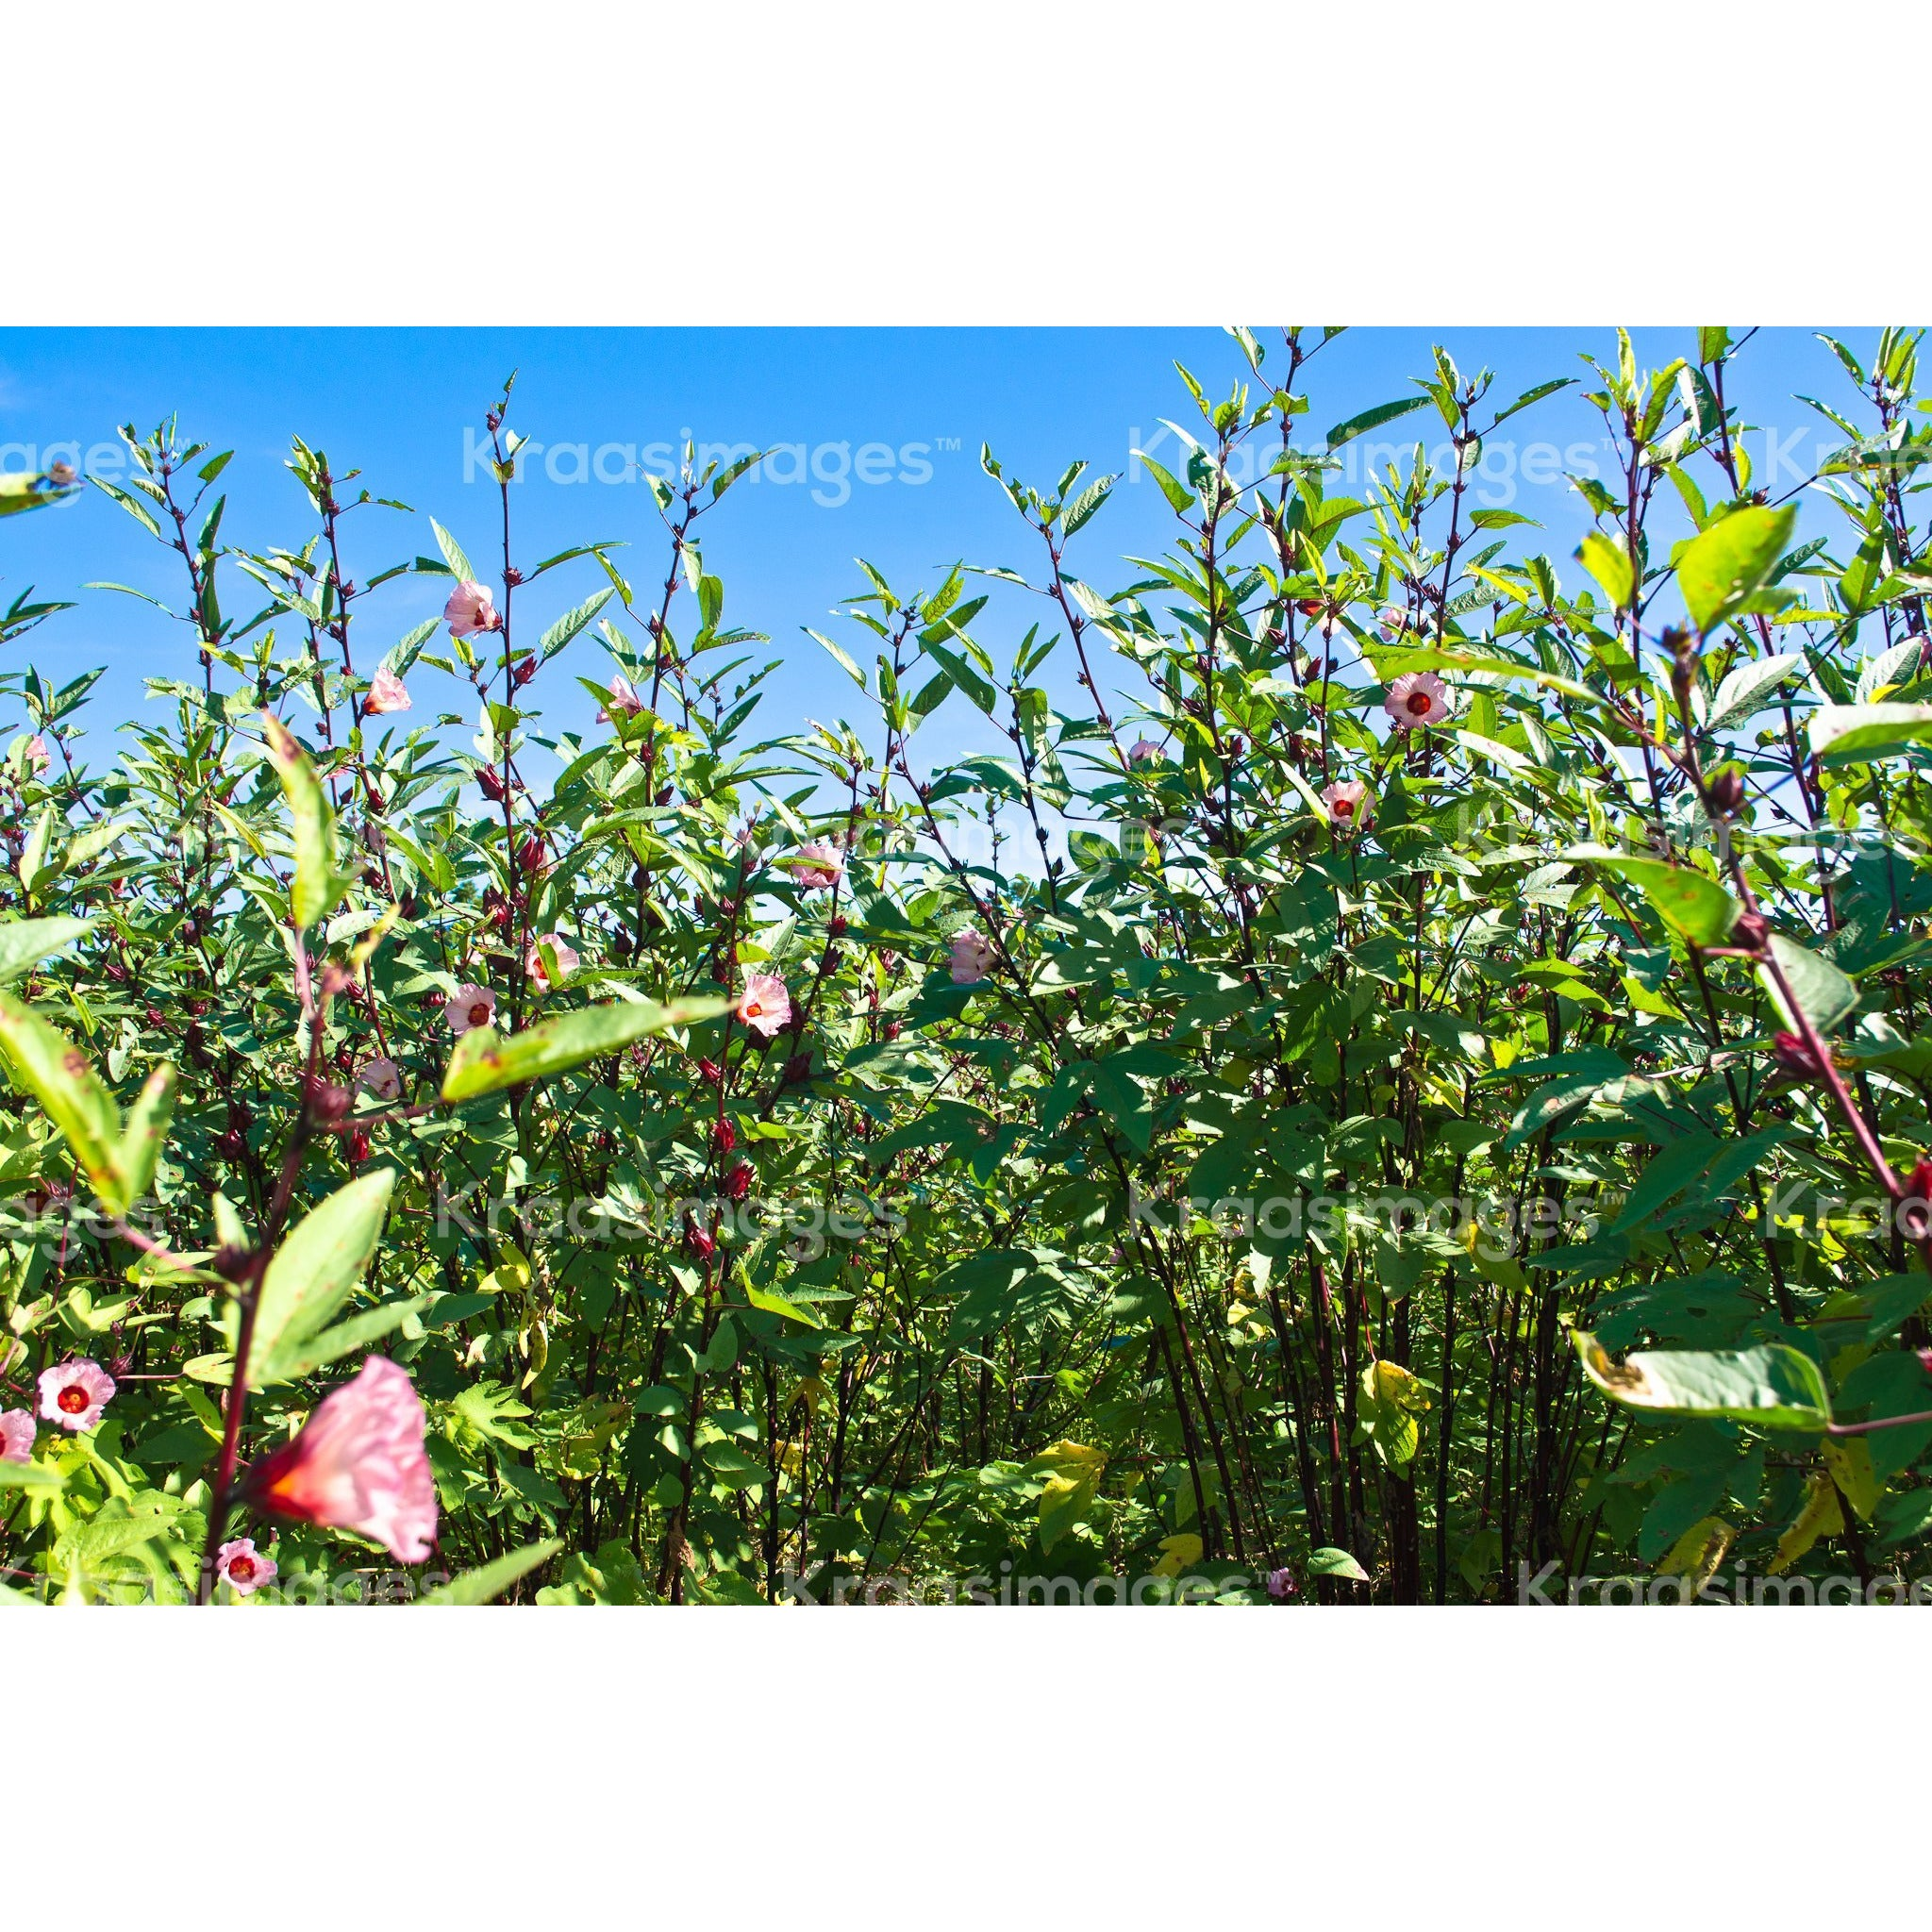 Sorrel Farm with blue skies in St. Elizabeth Jamaica. Stock photo